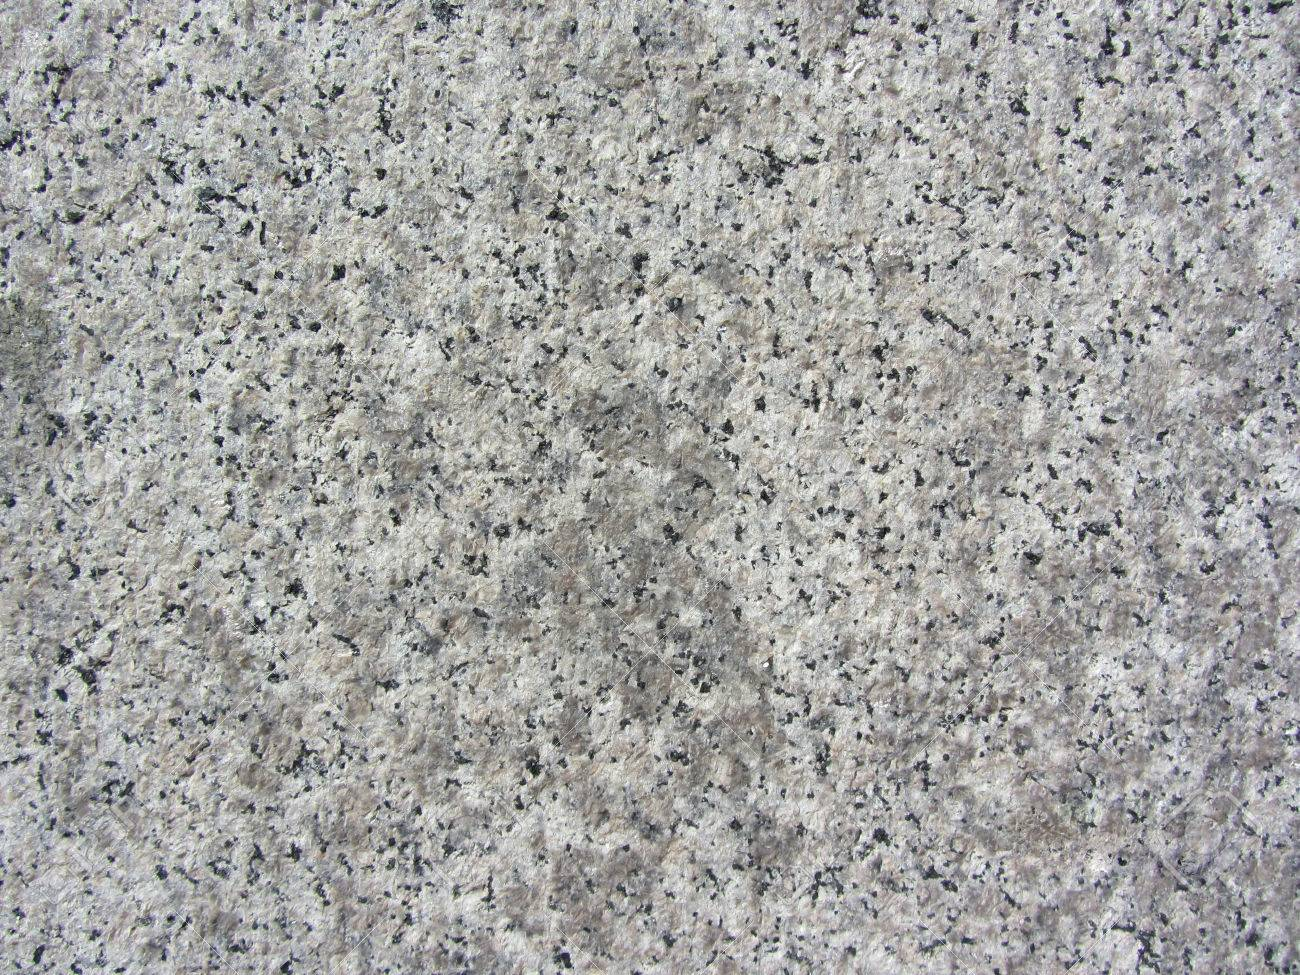 Gray White And Black Granite Stone Texture Stock Photo Picture And Royalty Free Image Image 56245810